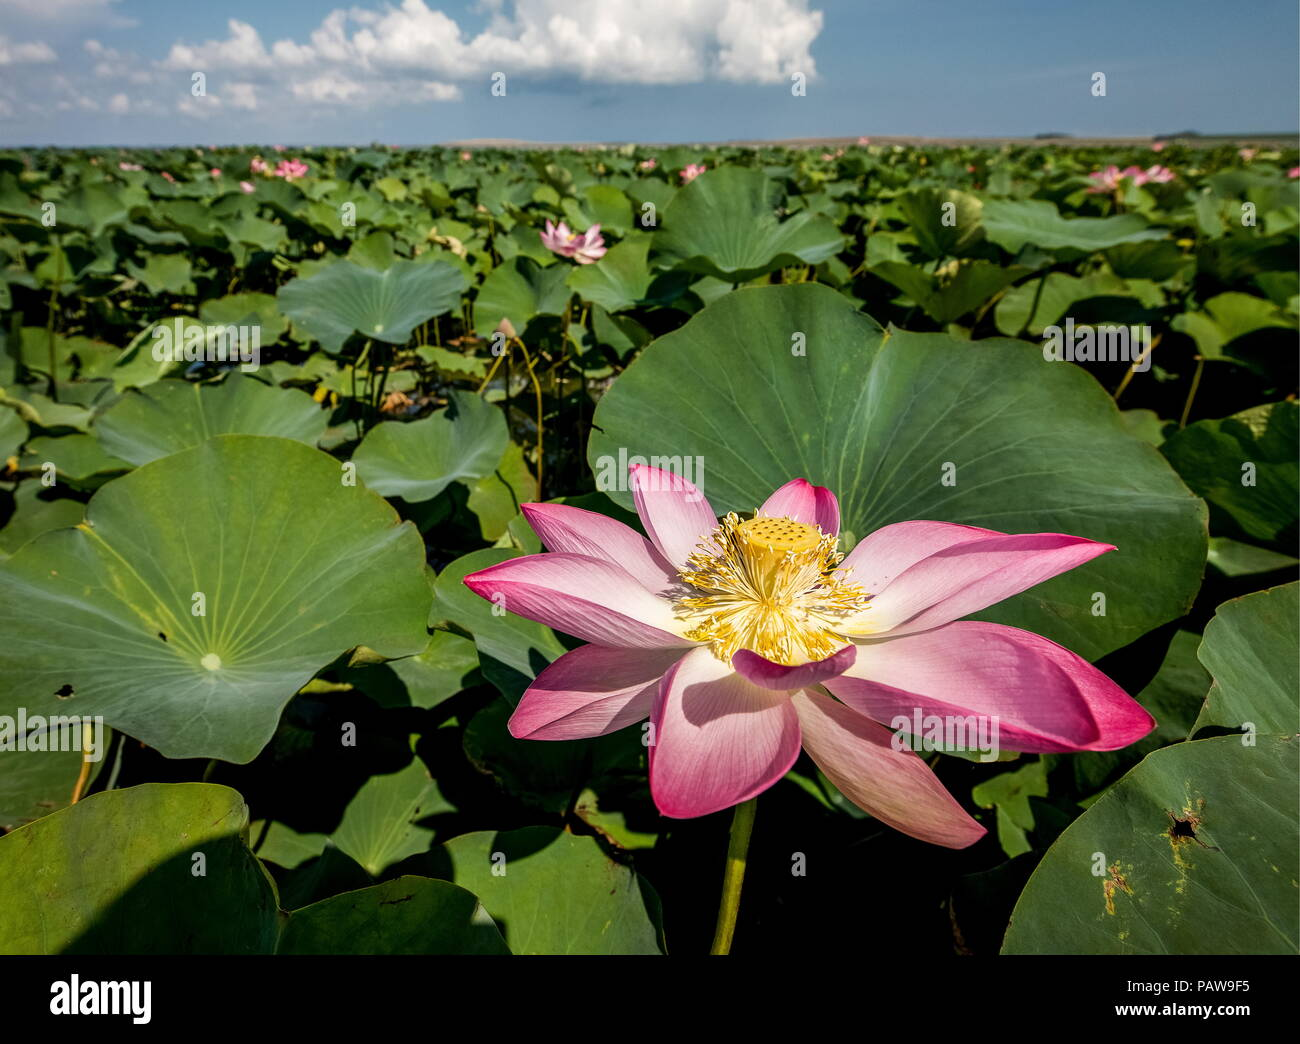 Russia 23rd july 2018 krasnodar territory russia july 23 2018 russia 23rd july 2018 krasnodar territory russia july 23 2018 lotuses in bloom in the akhtanizovsky estuary in the northern part of the taman izmirmasajfo